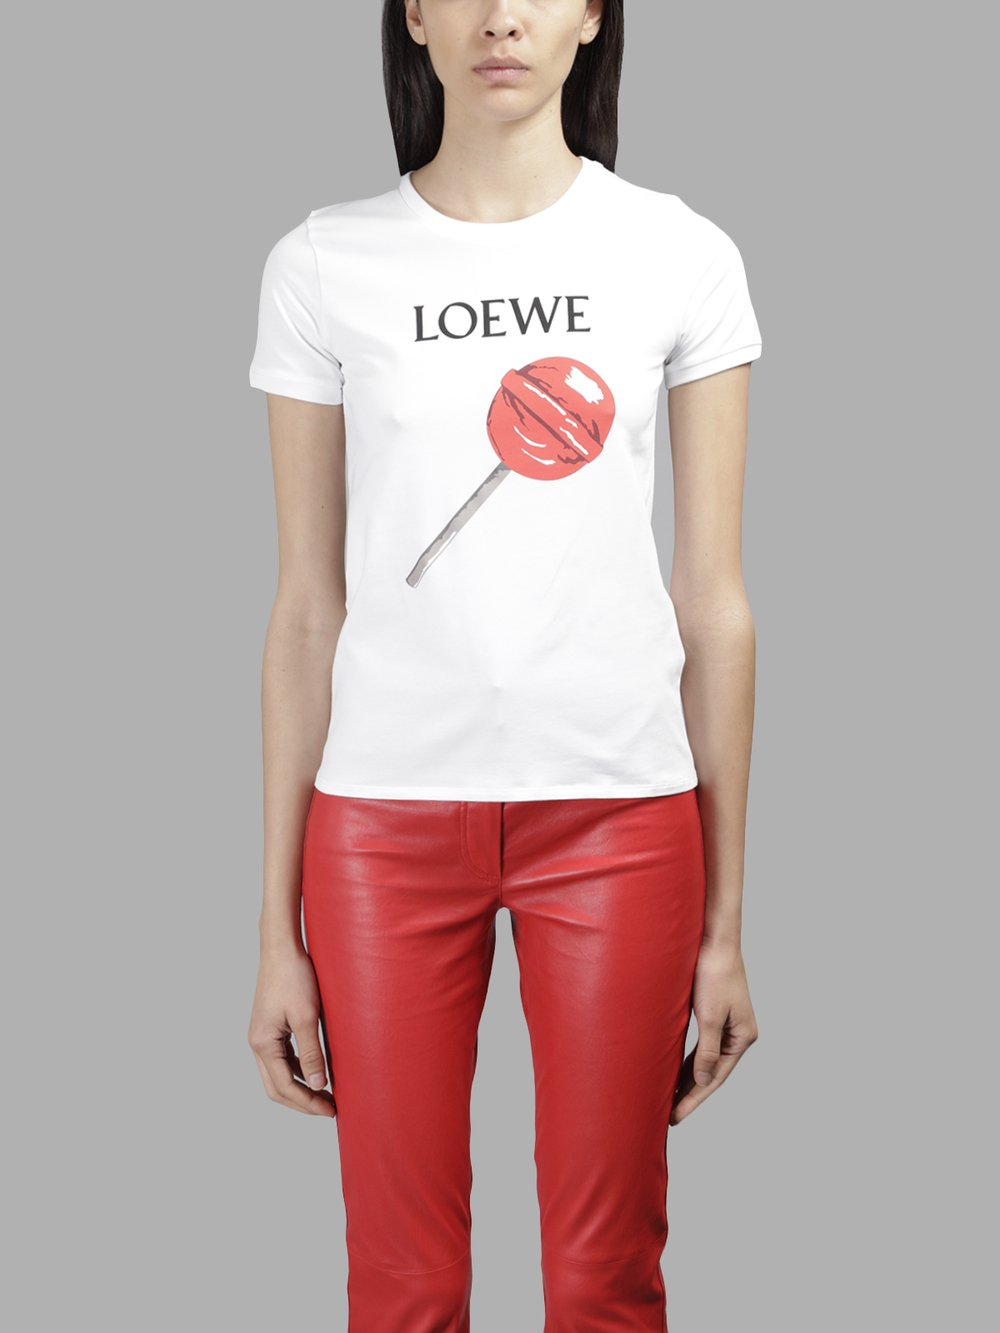 fast delivery new york to buy Loewe T-shirts S6279430CR 2100